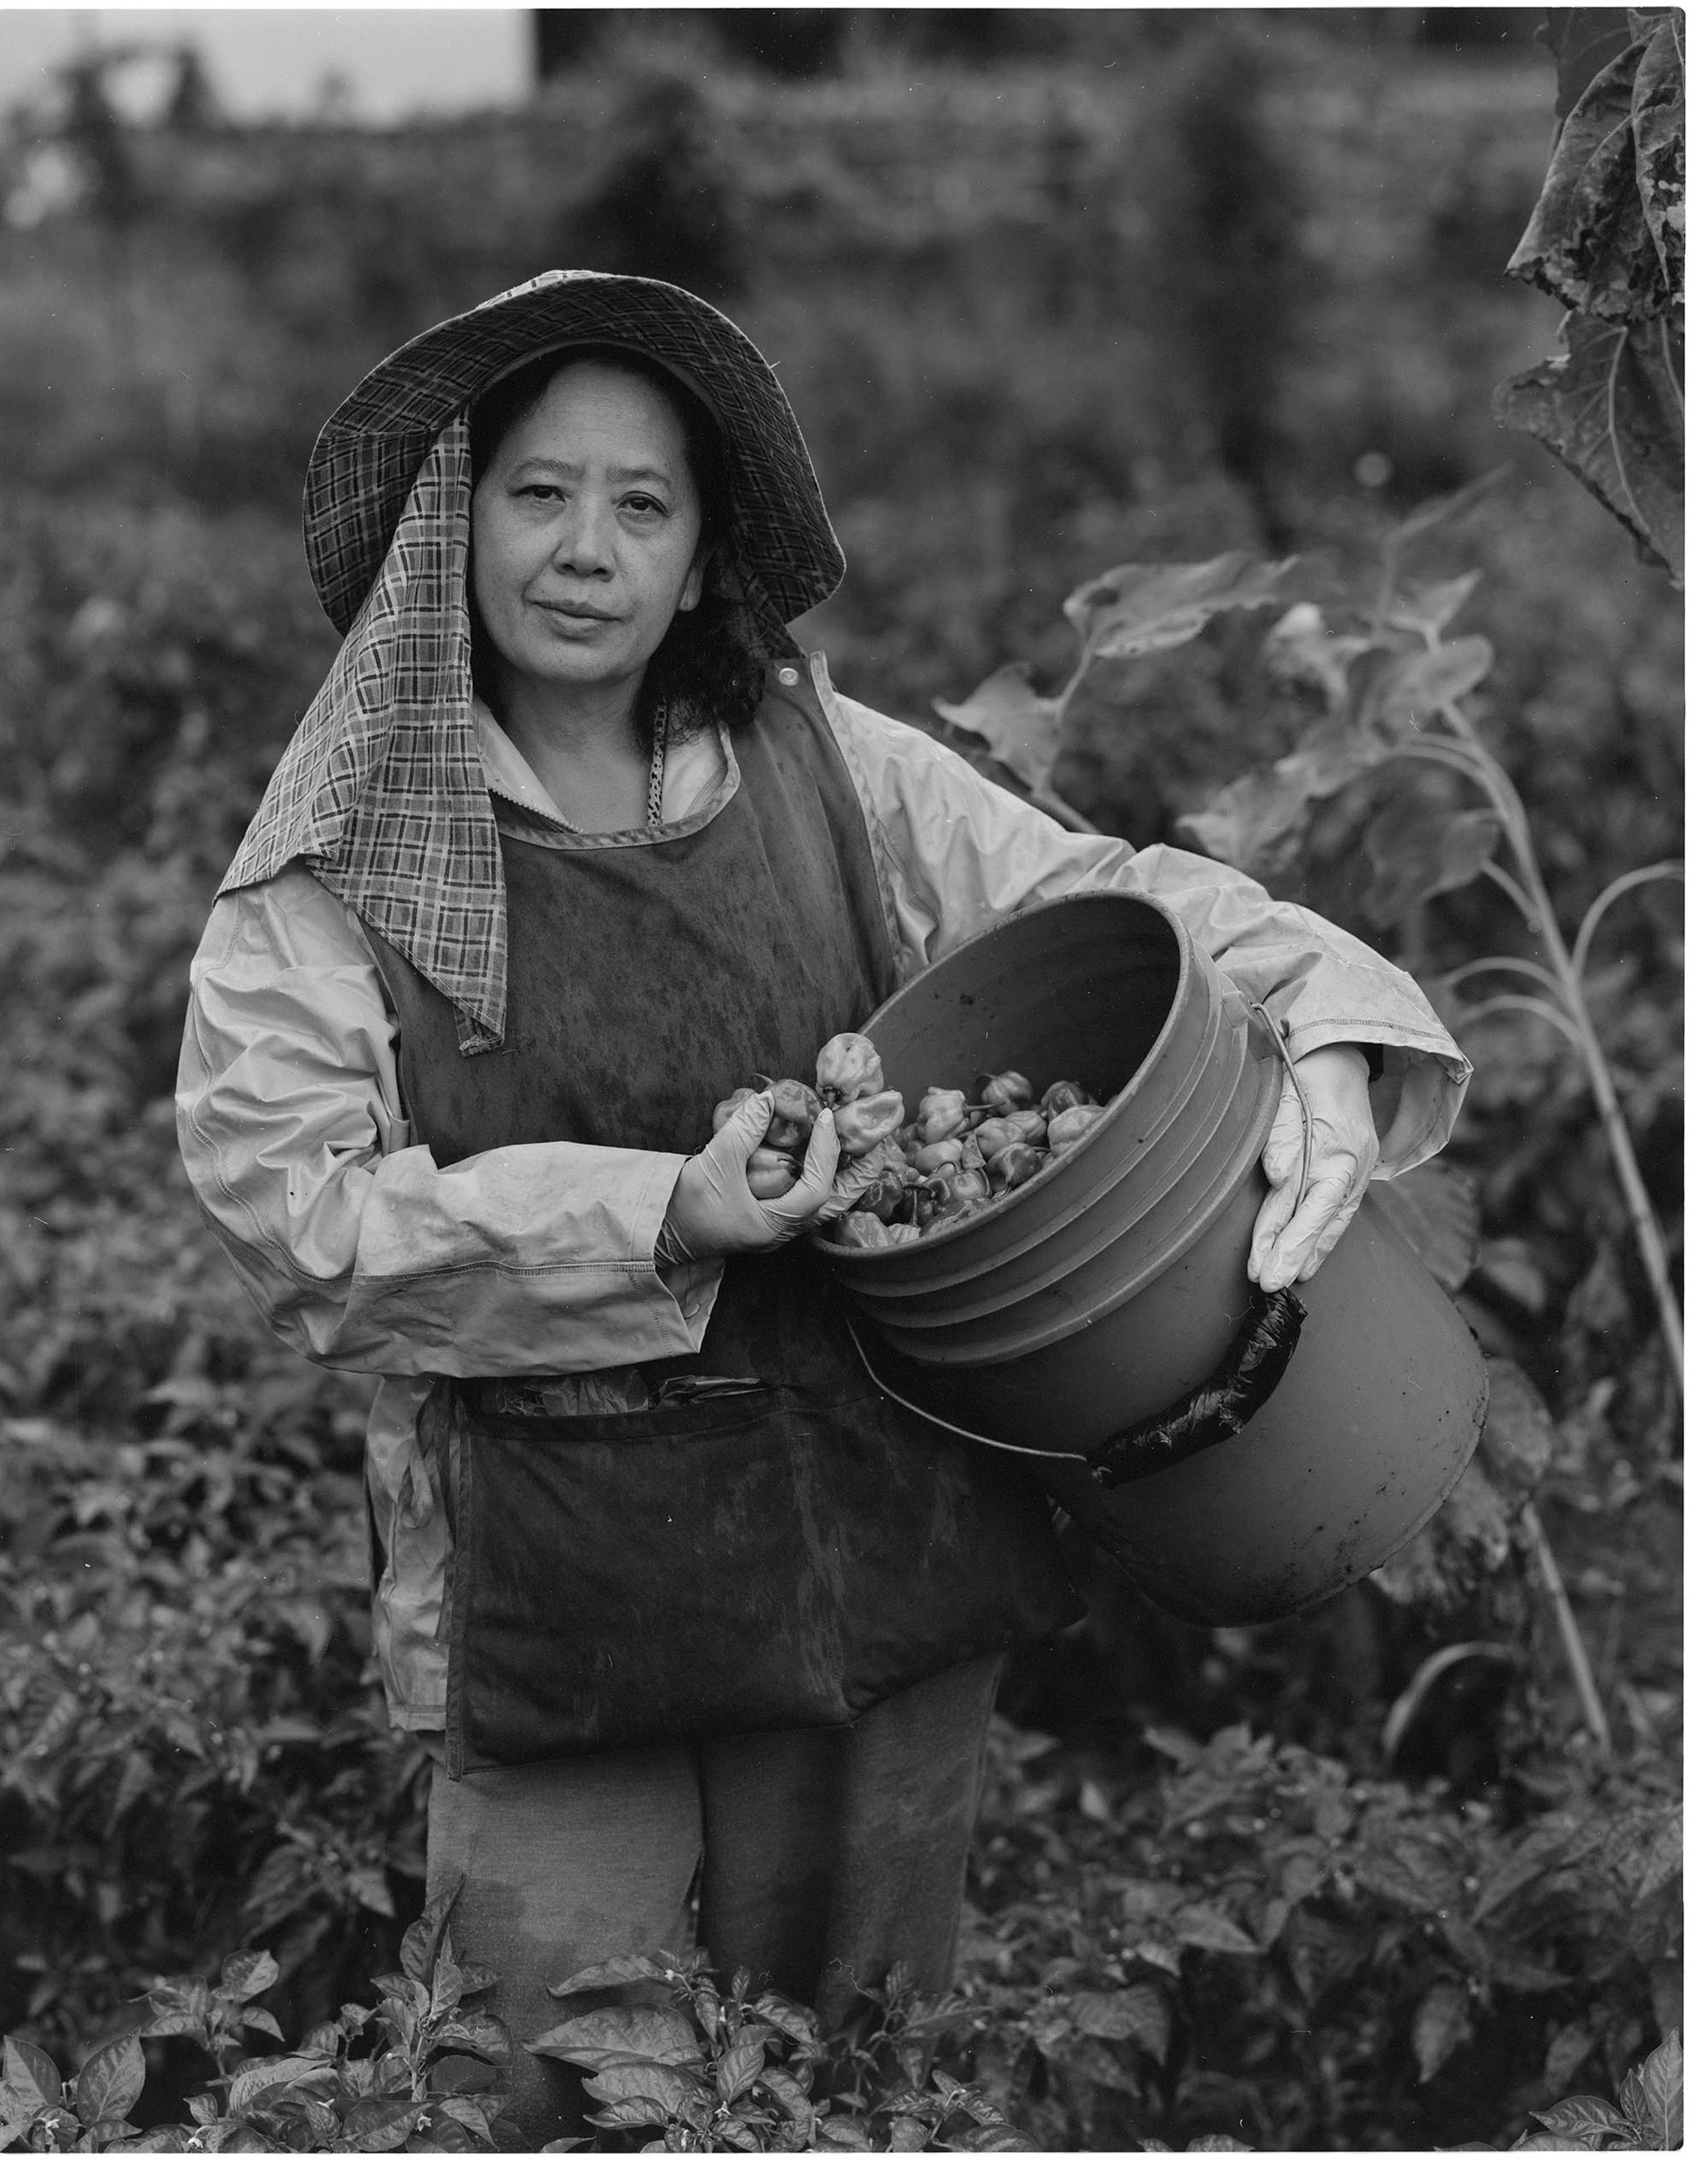 Middle-aged farmer with a bucket full of her farm produce